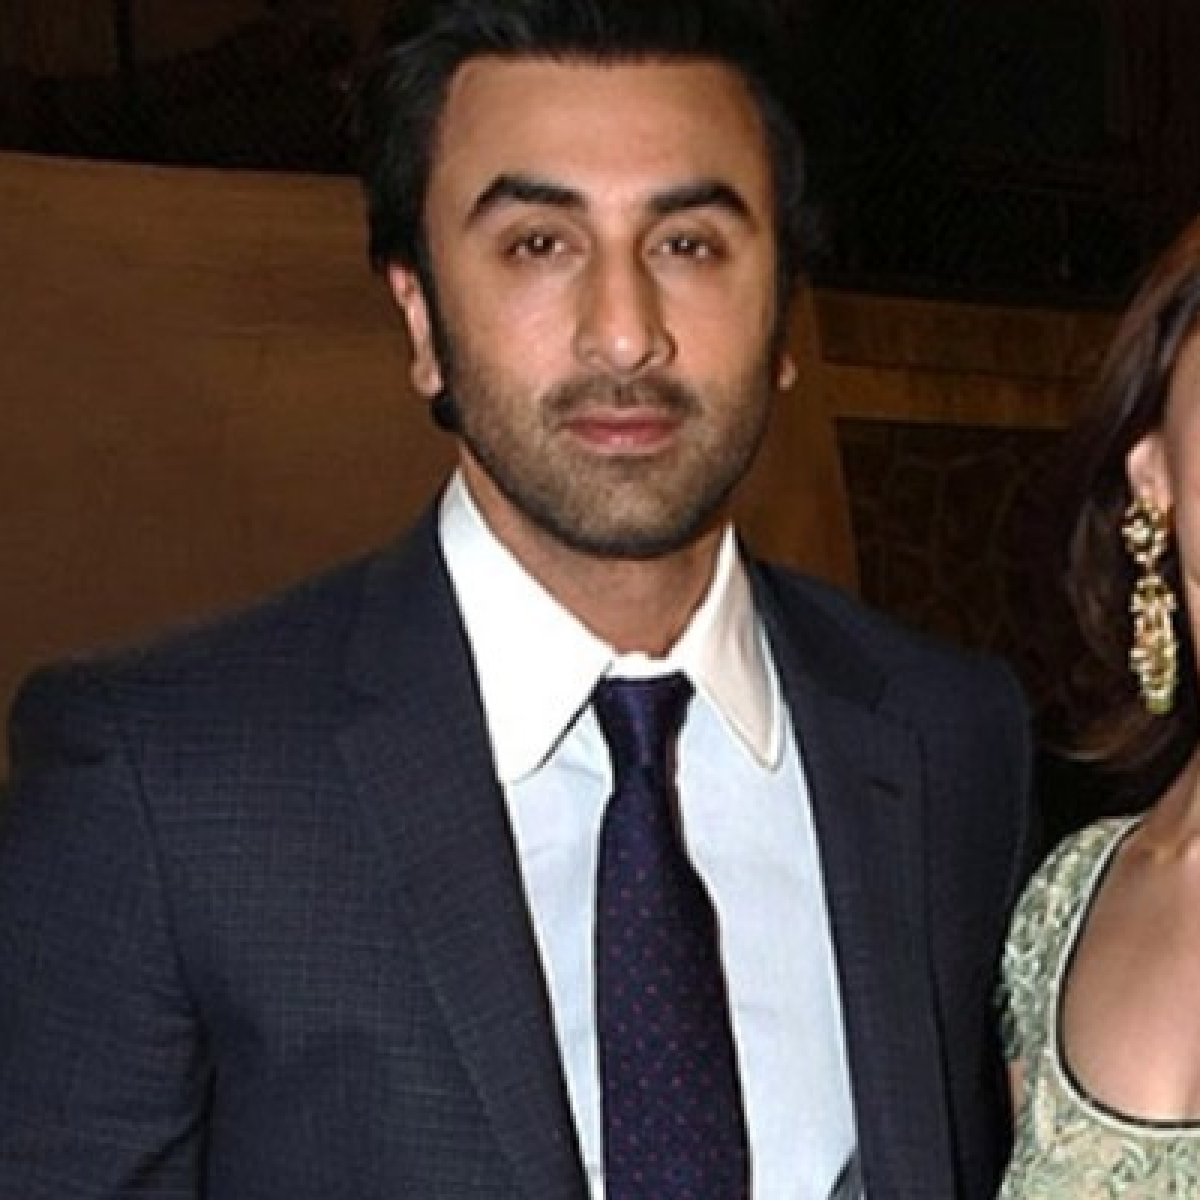 Alia Bhatt poses with beau Ranbir Kapoor's pet dogs, says 'they make everything better'